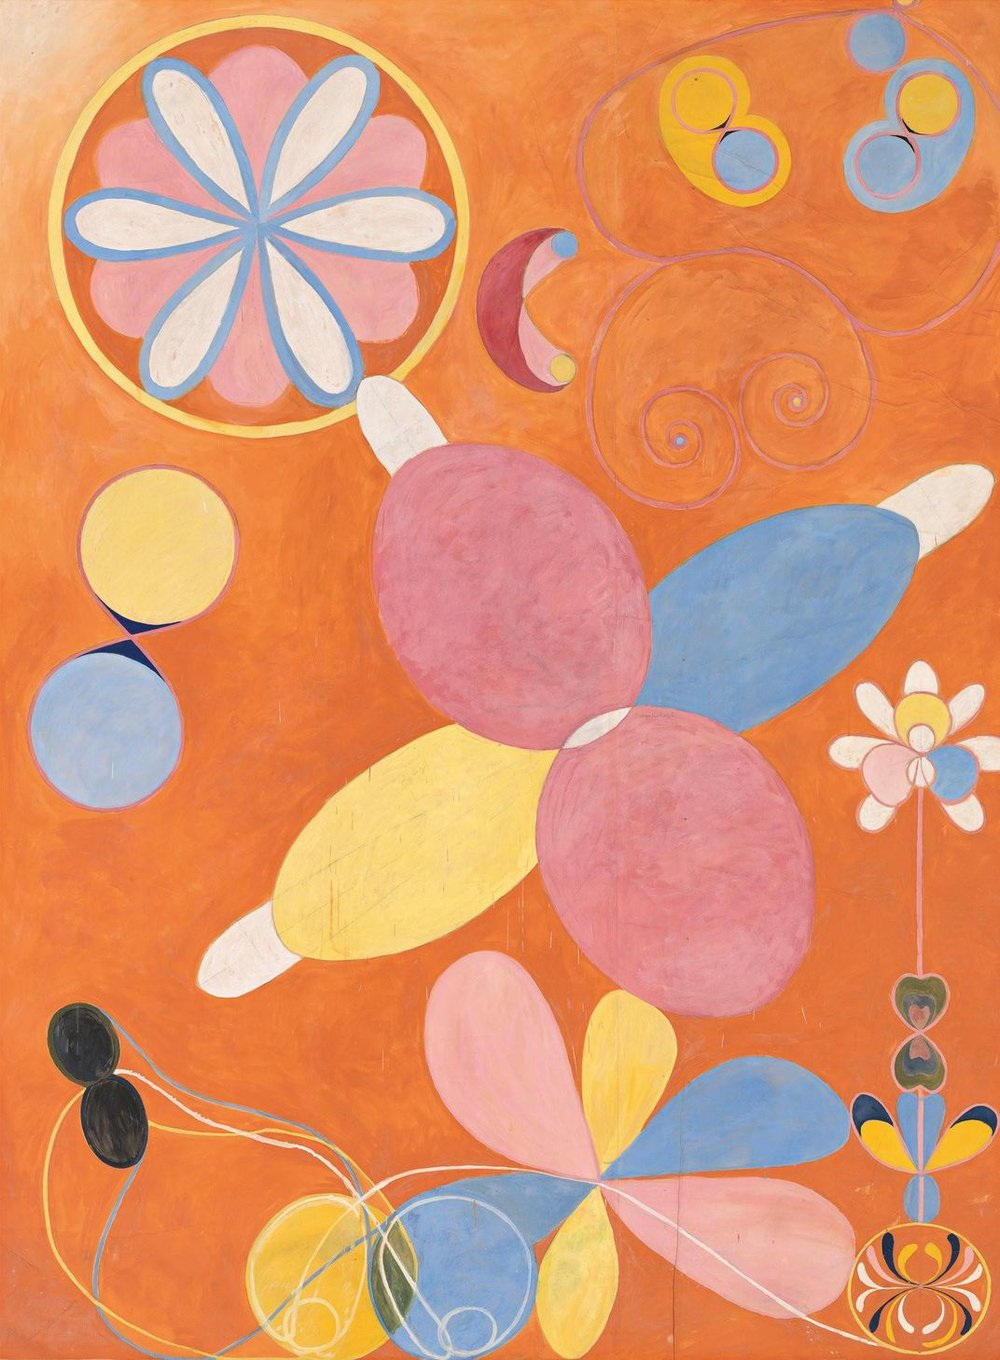 Hilma af Klints- sourced from www.hilmaafklint.se